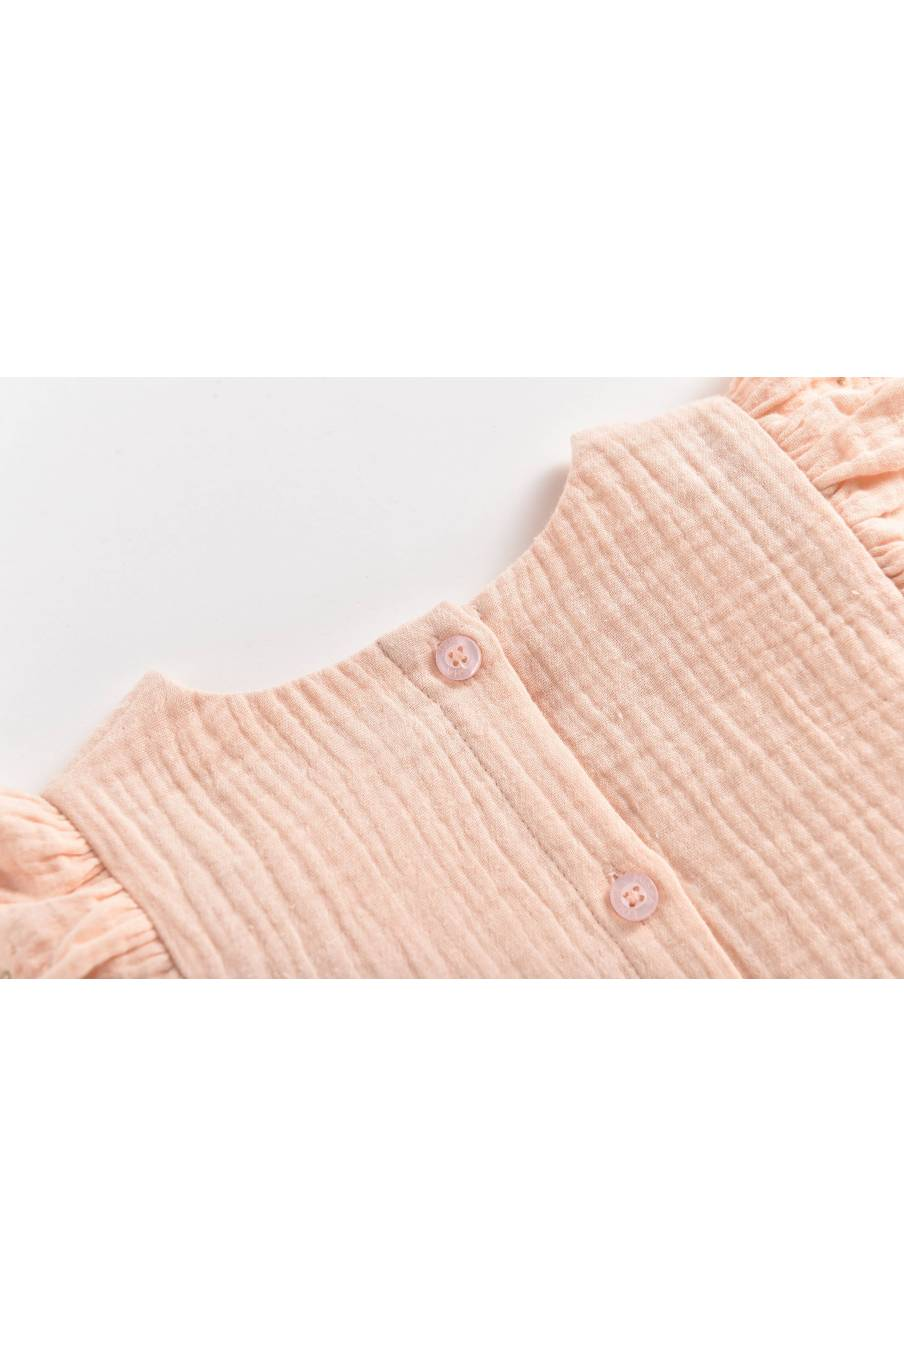 boheme chic vintage blouse bébé fille lisa blush